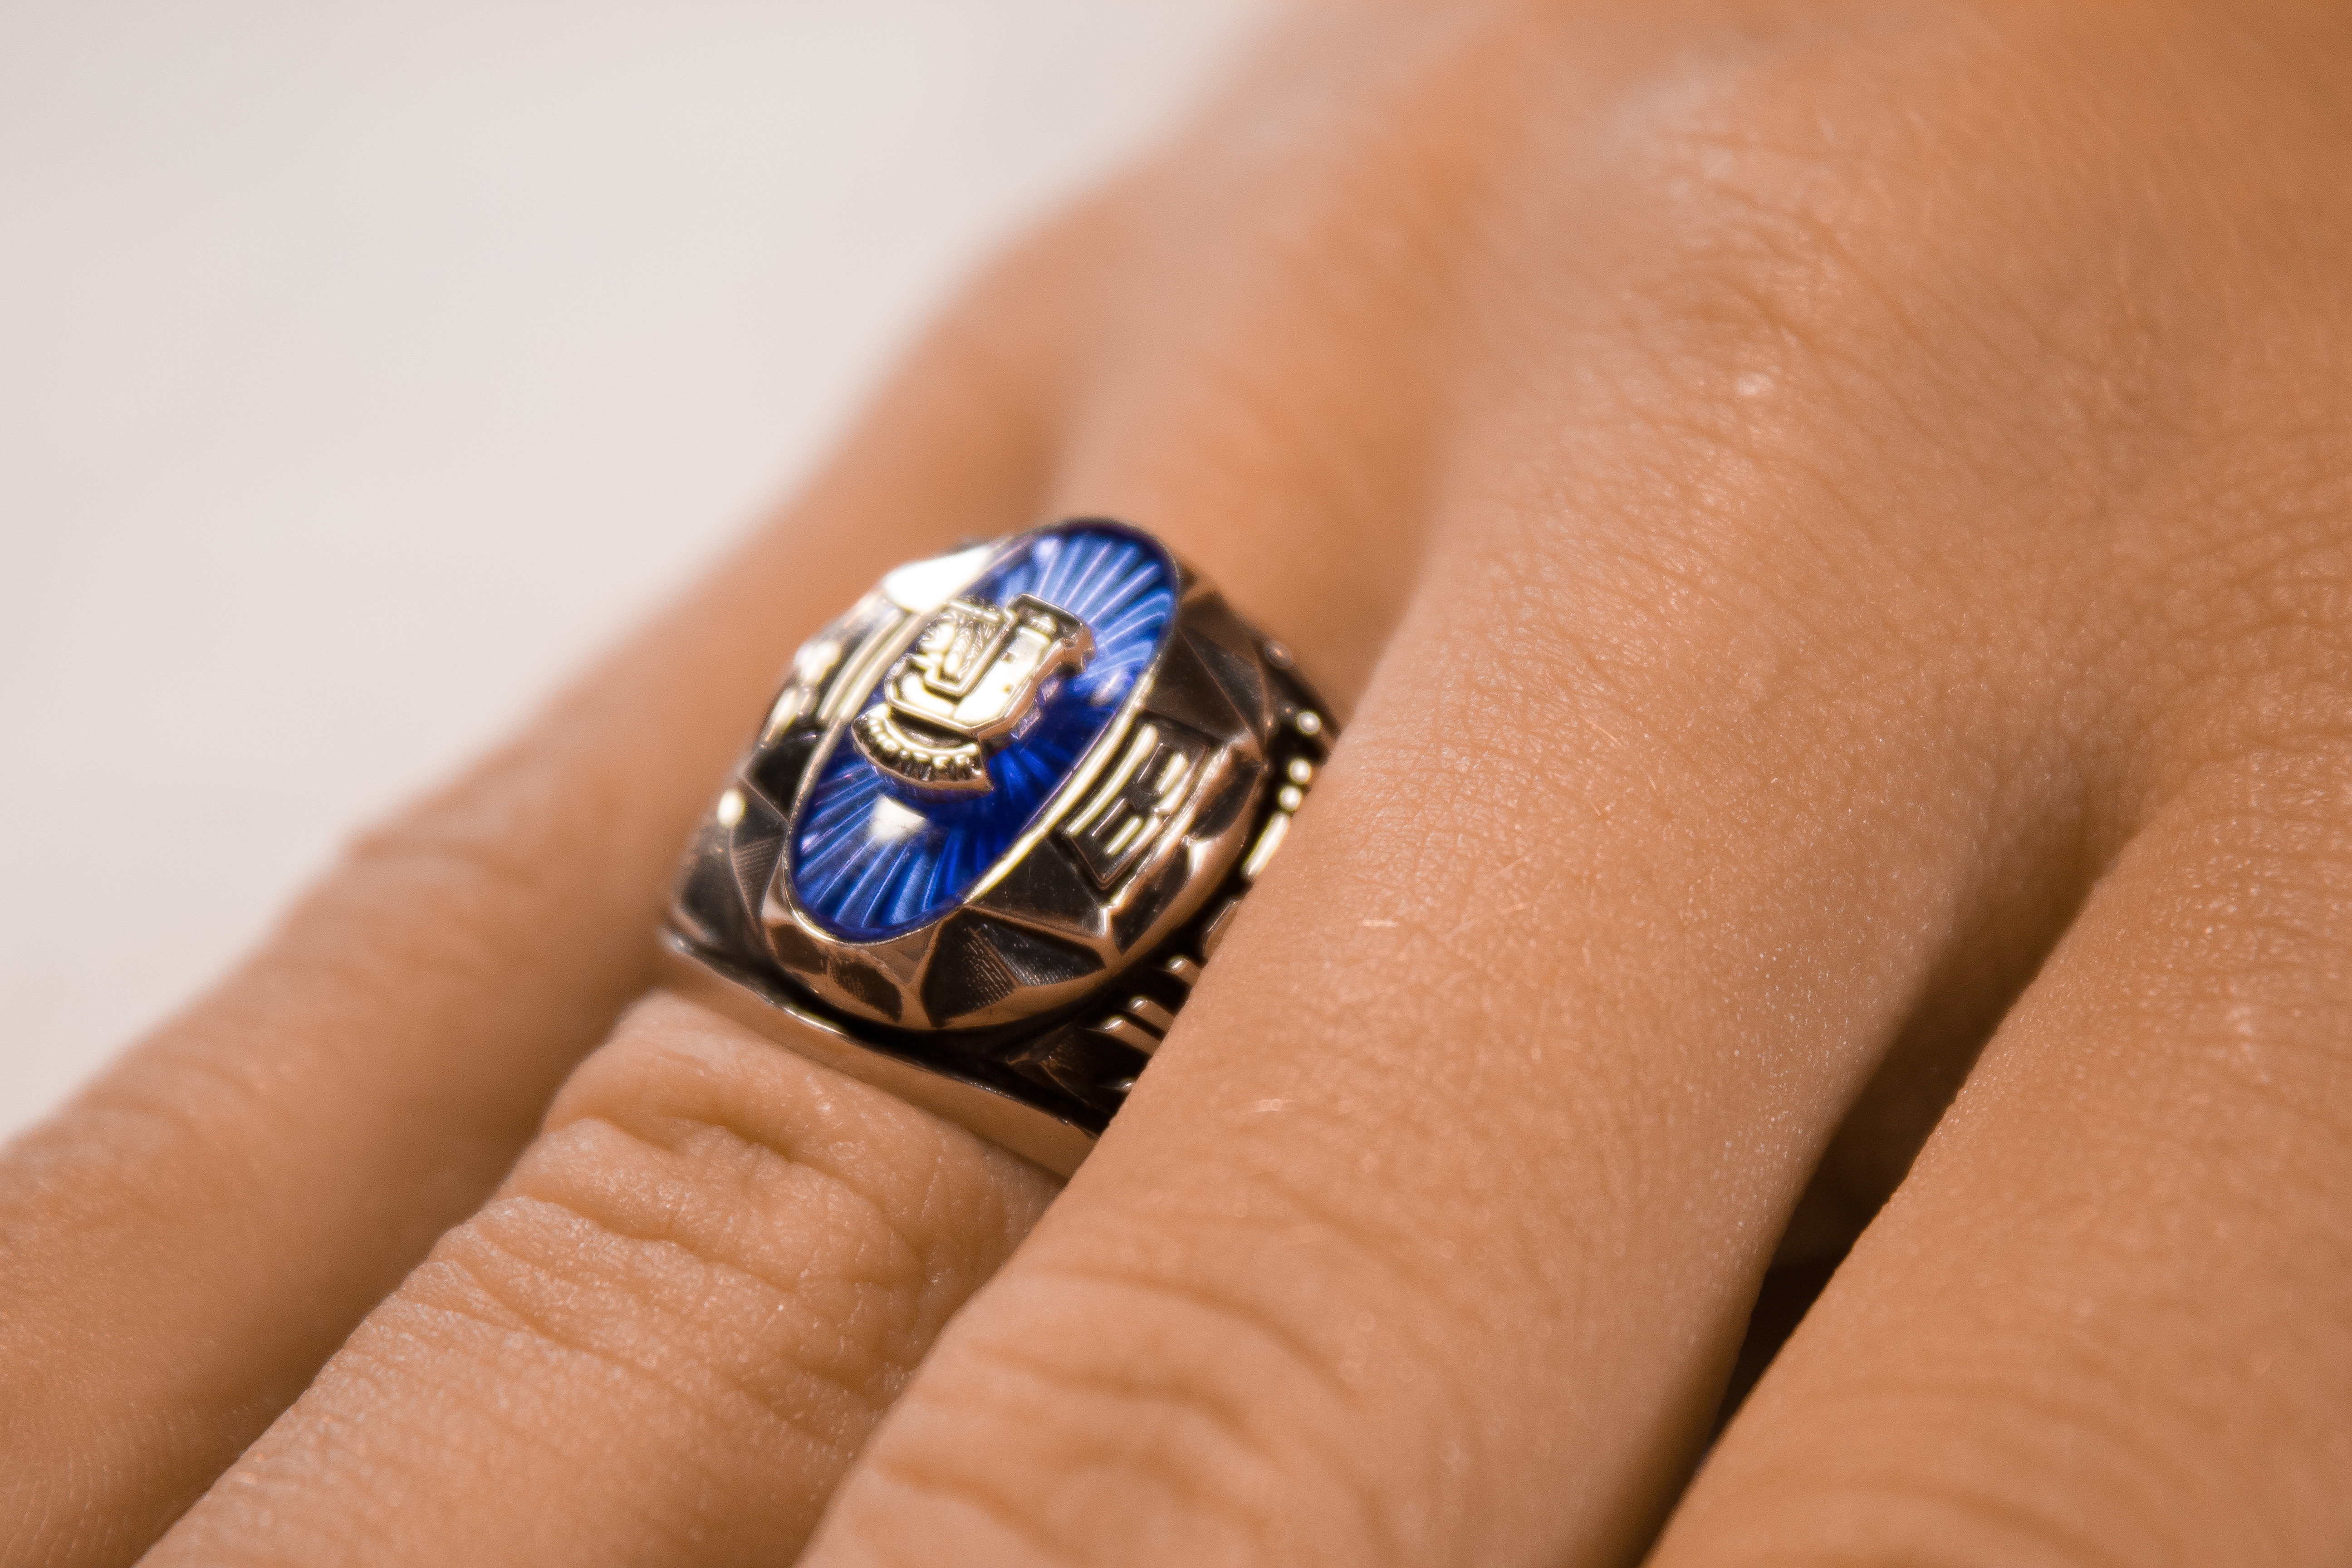 Place Your Class Ring On The Ring Finger Of Your Right Hand, Which Leaves  The Ring Finger Of Your Left Hand To Be Reserved For An Engagement Ring Or  Wedding